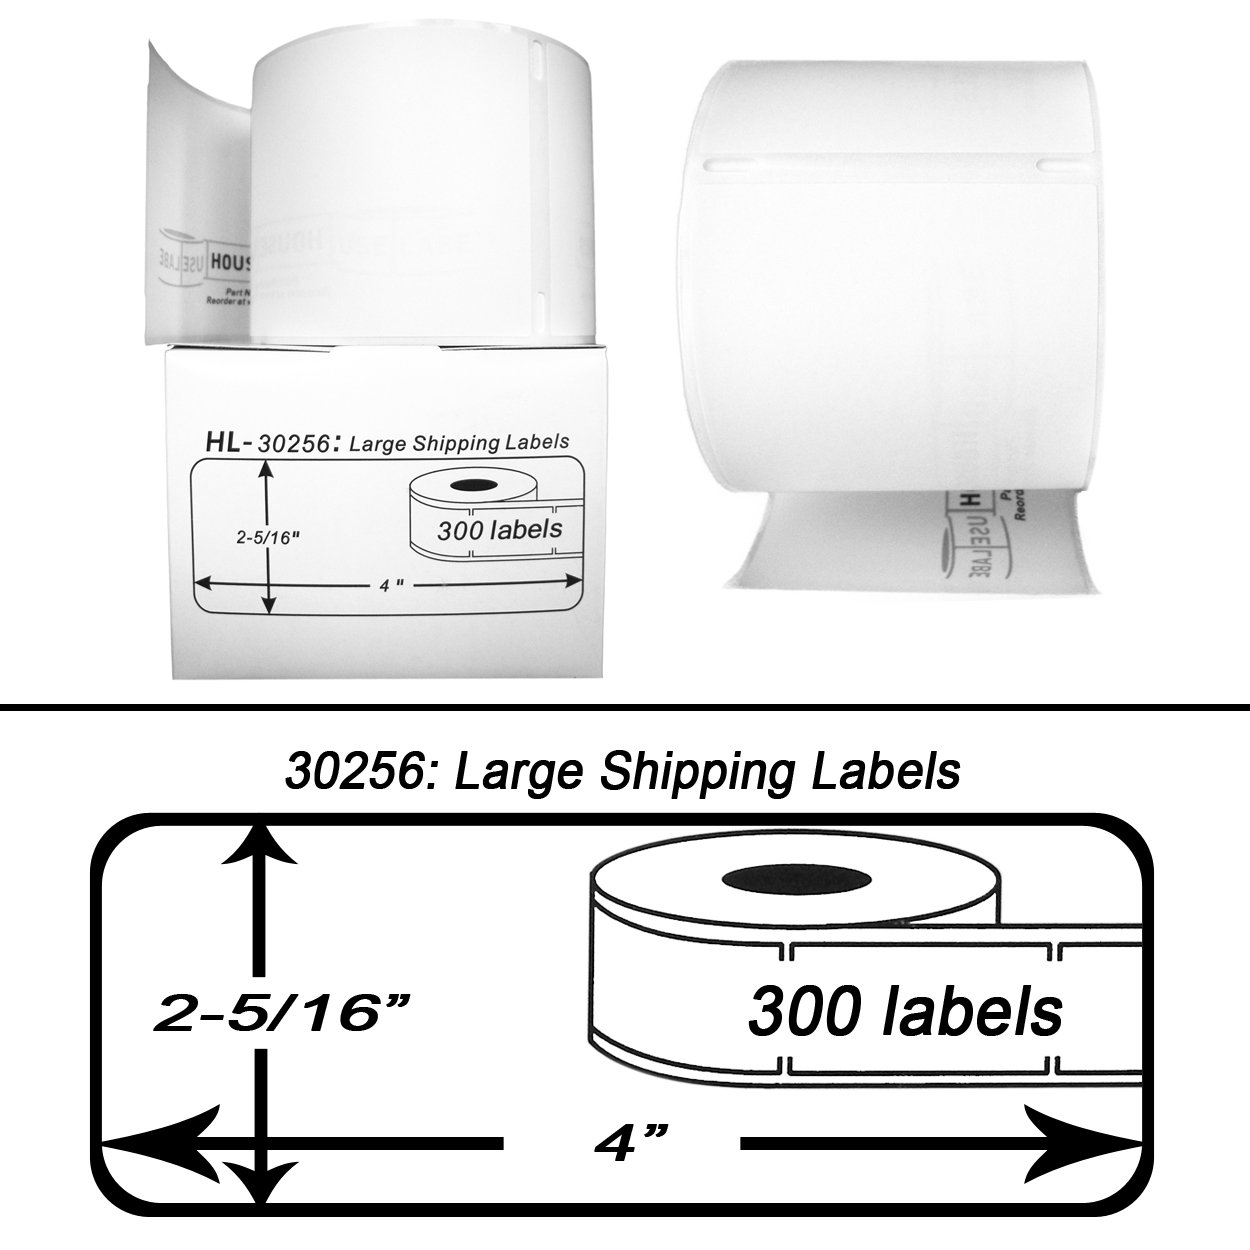 Amazon DYMOCompatible 30256 Large Shipping Labels 2516 – Large Mailing Labels